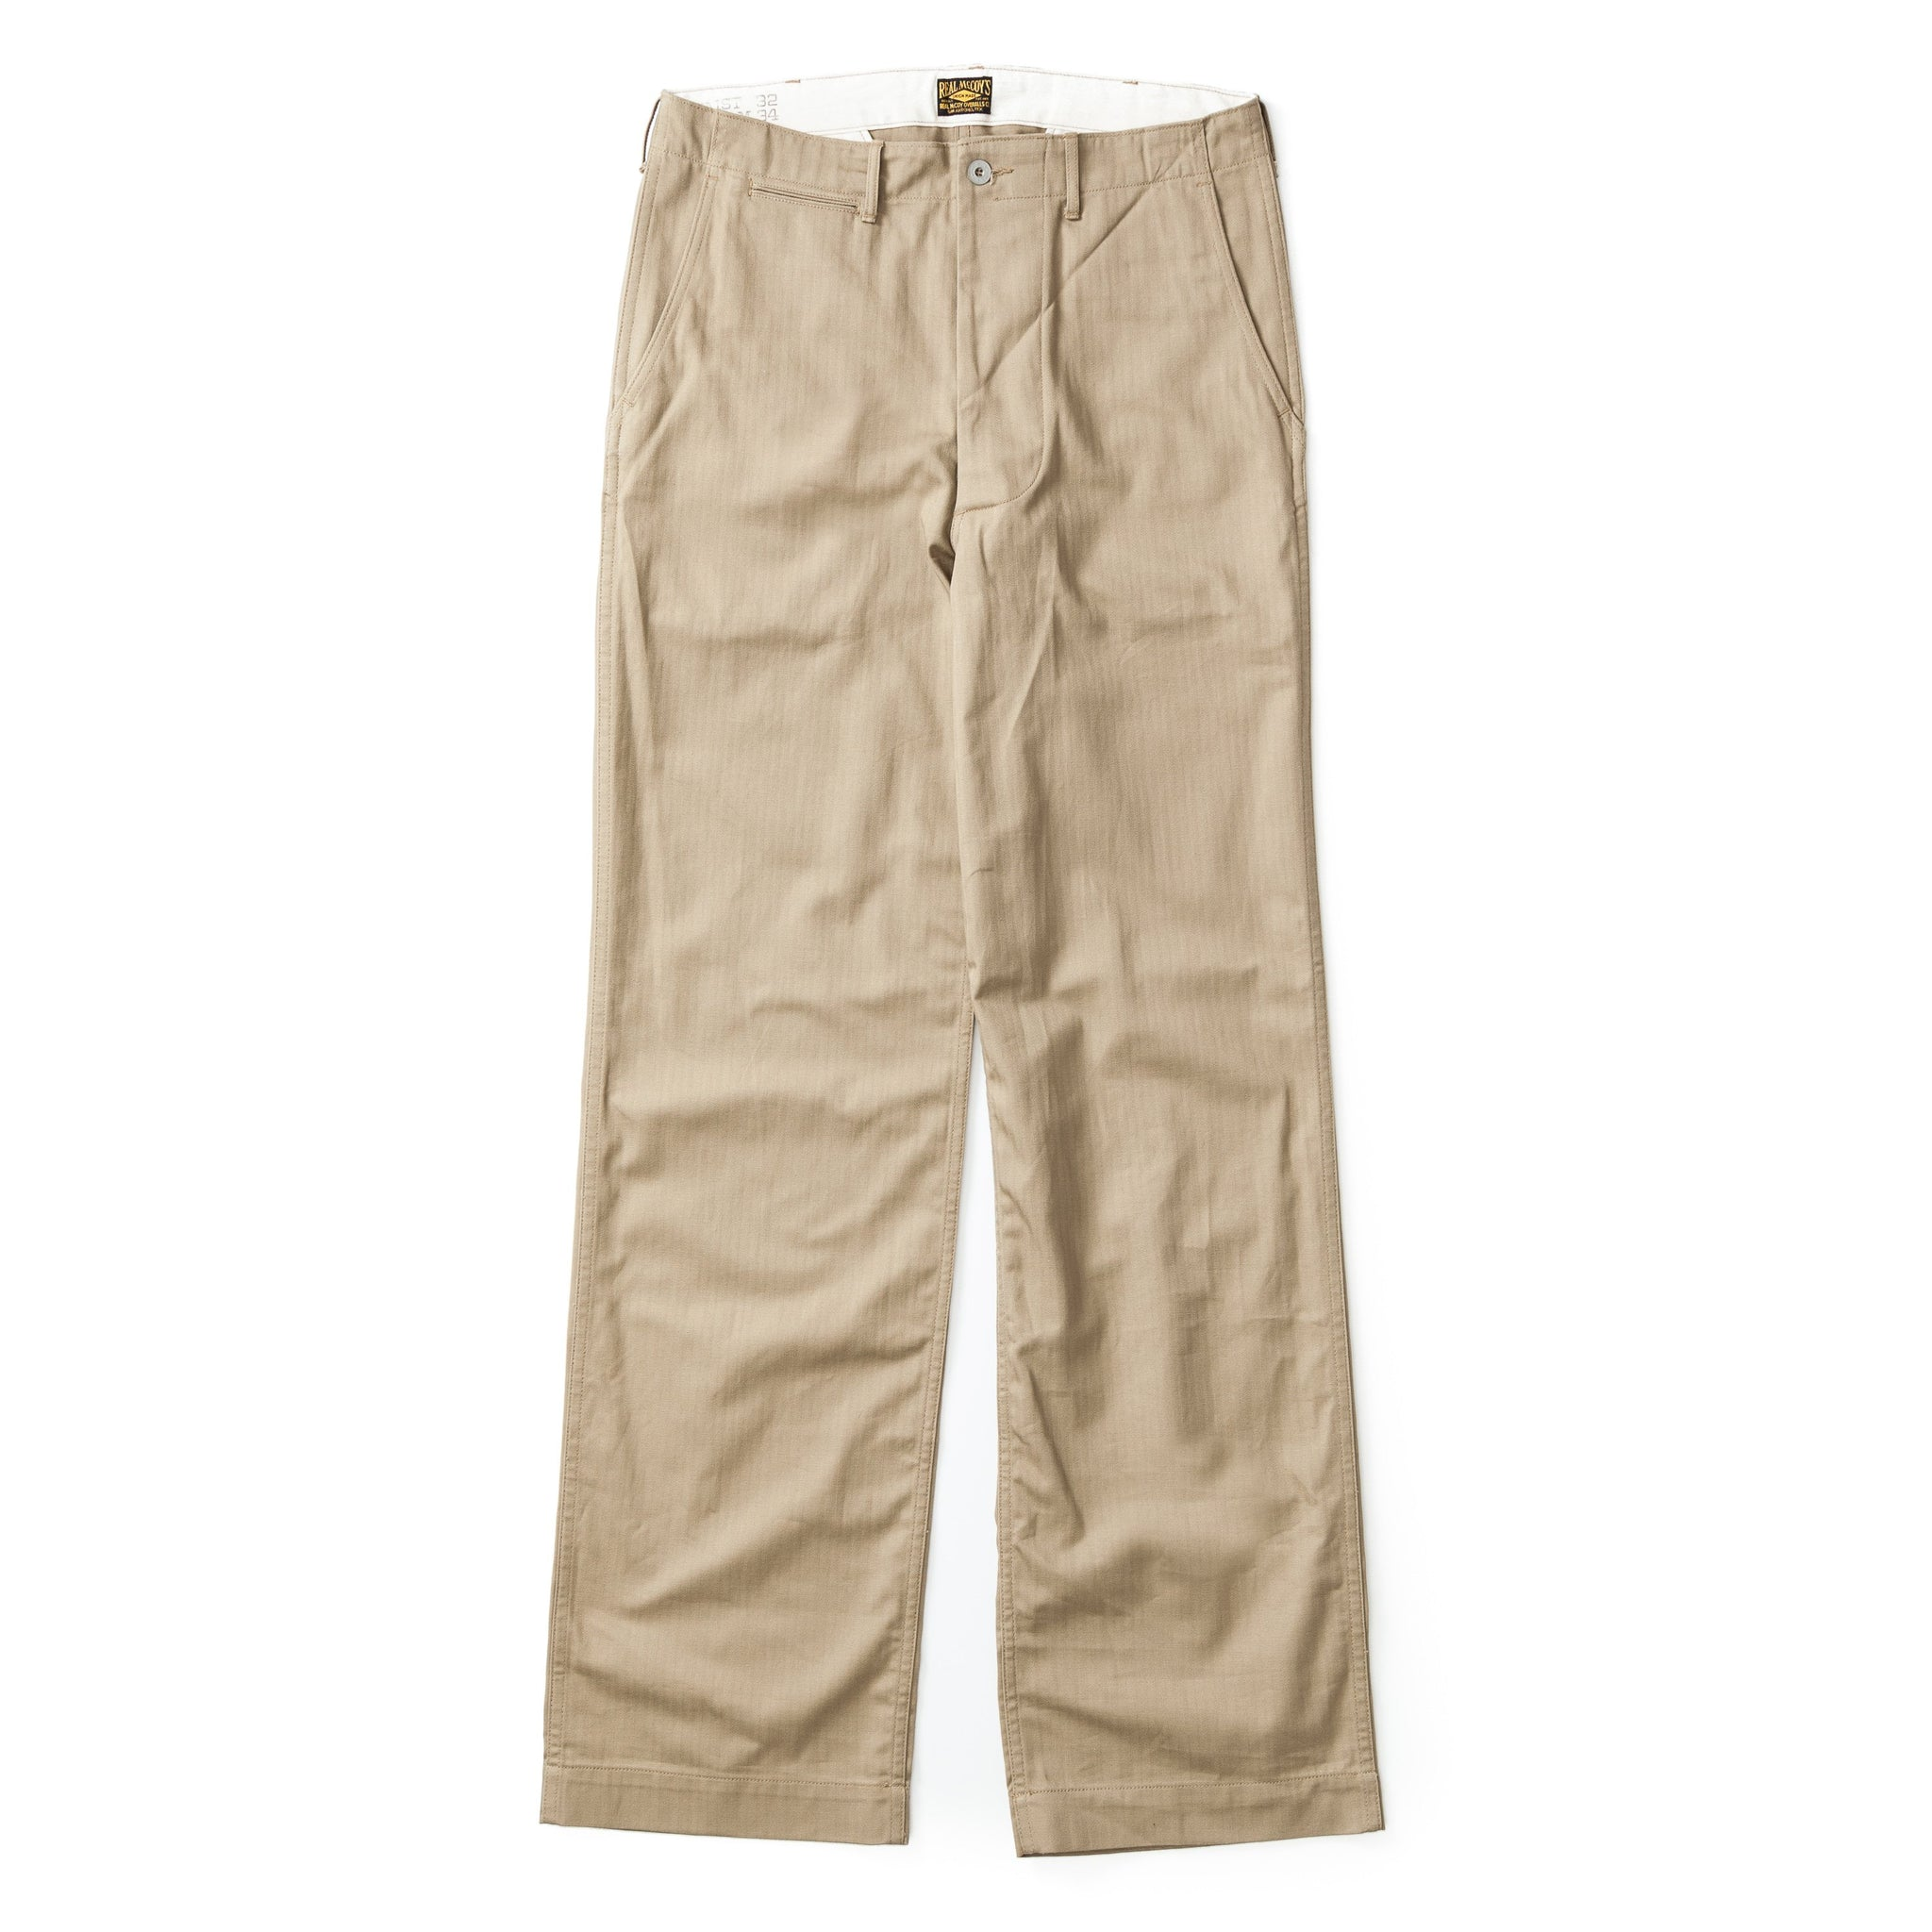 Civilian '41 Trousers (Khaki HBT)